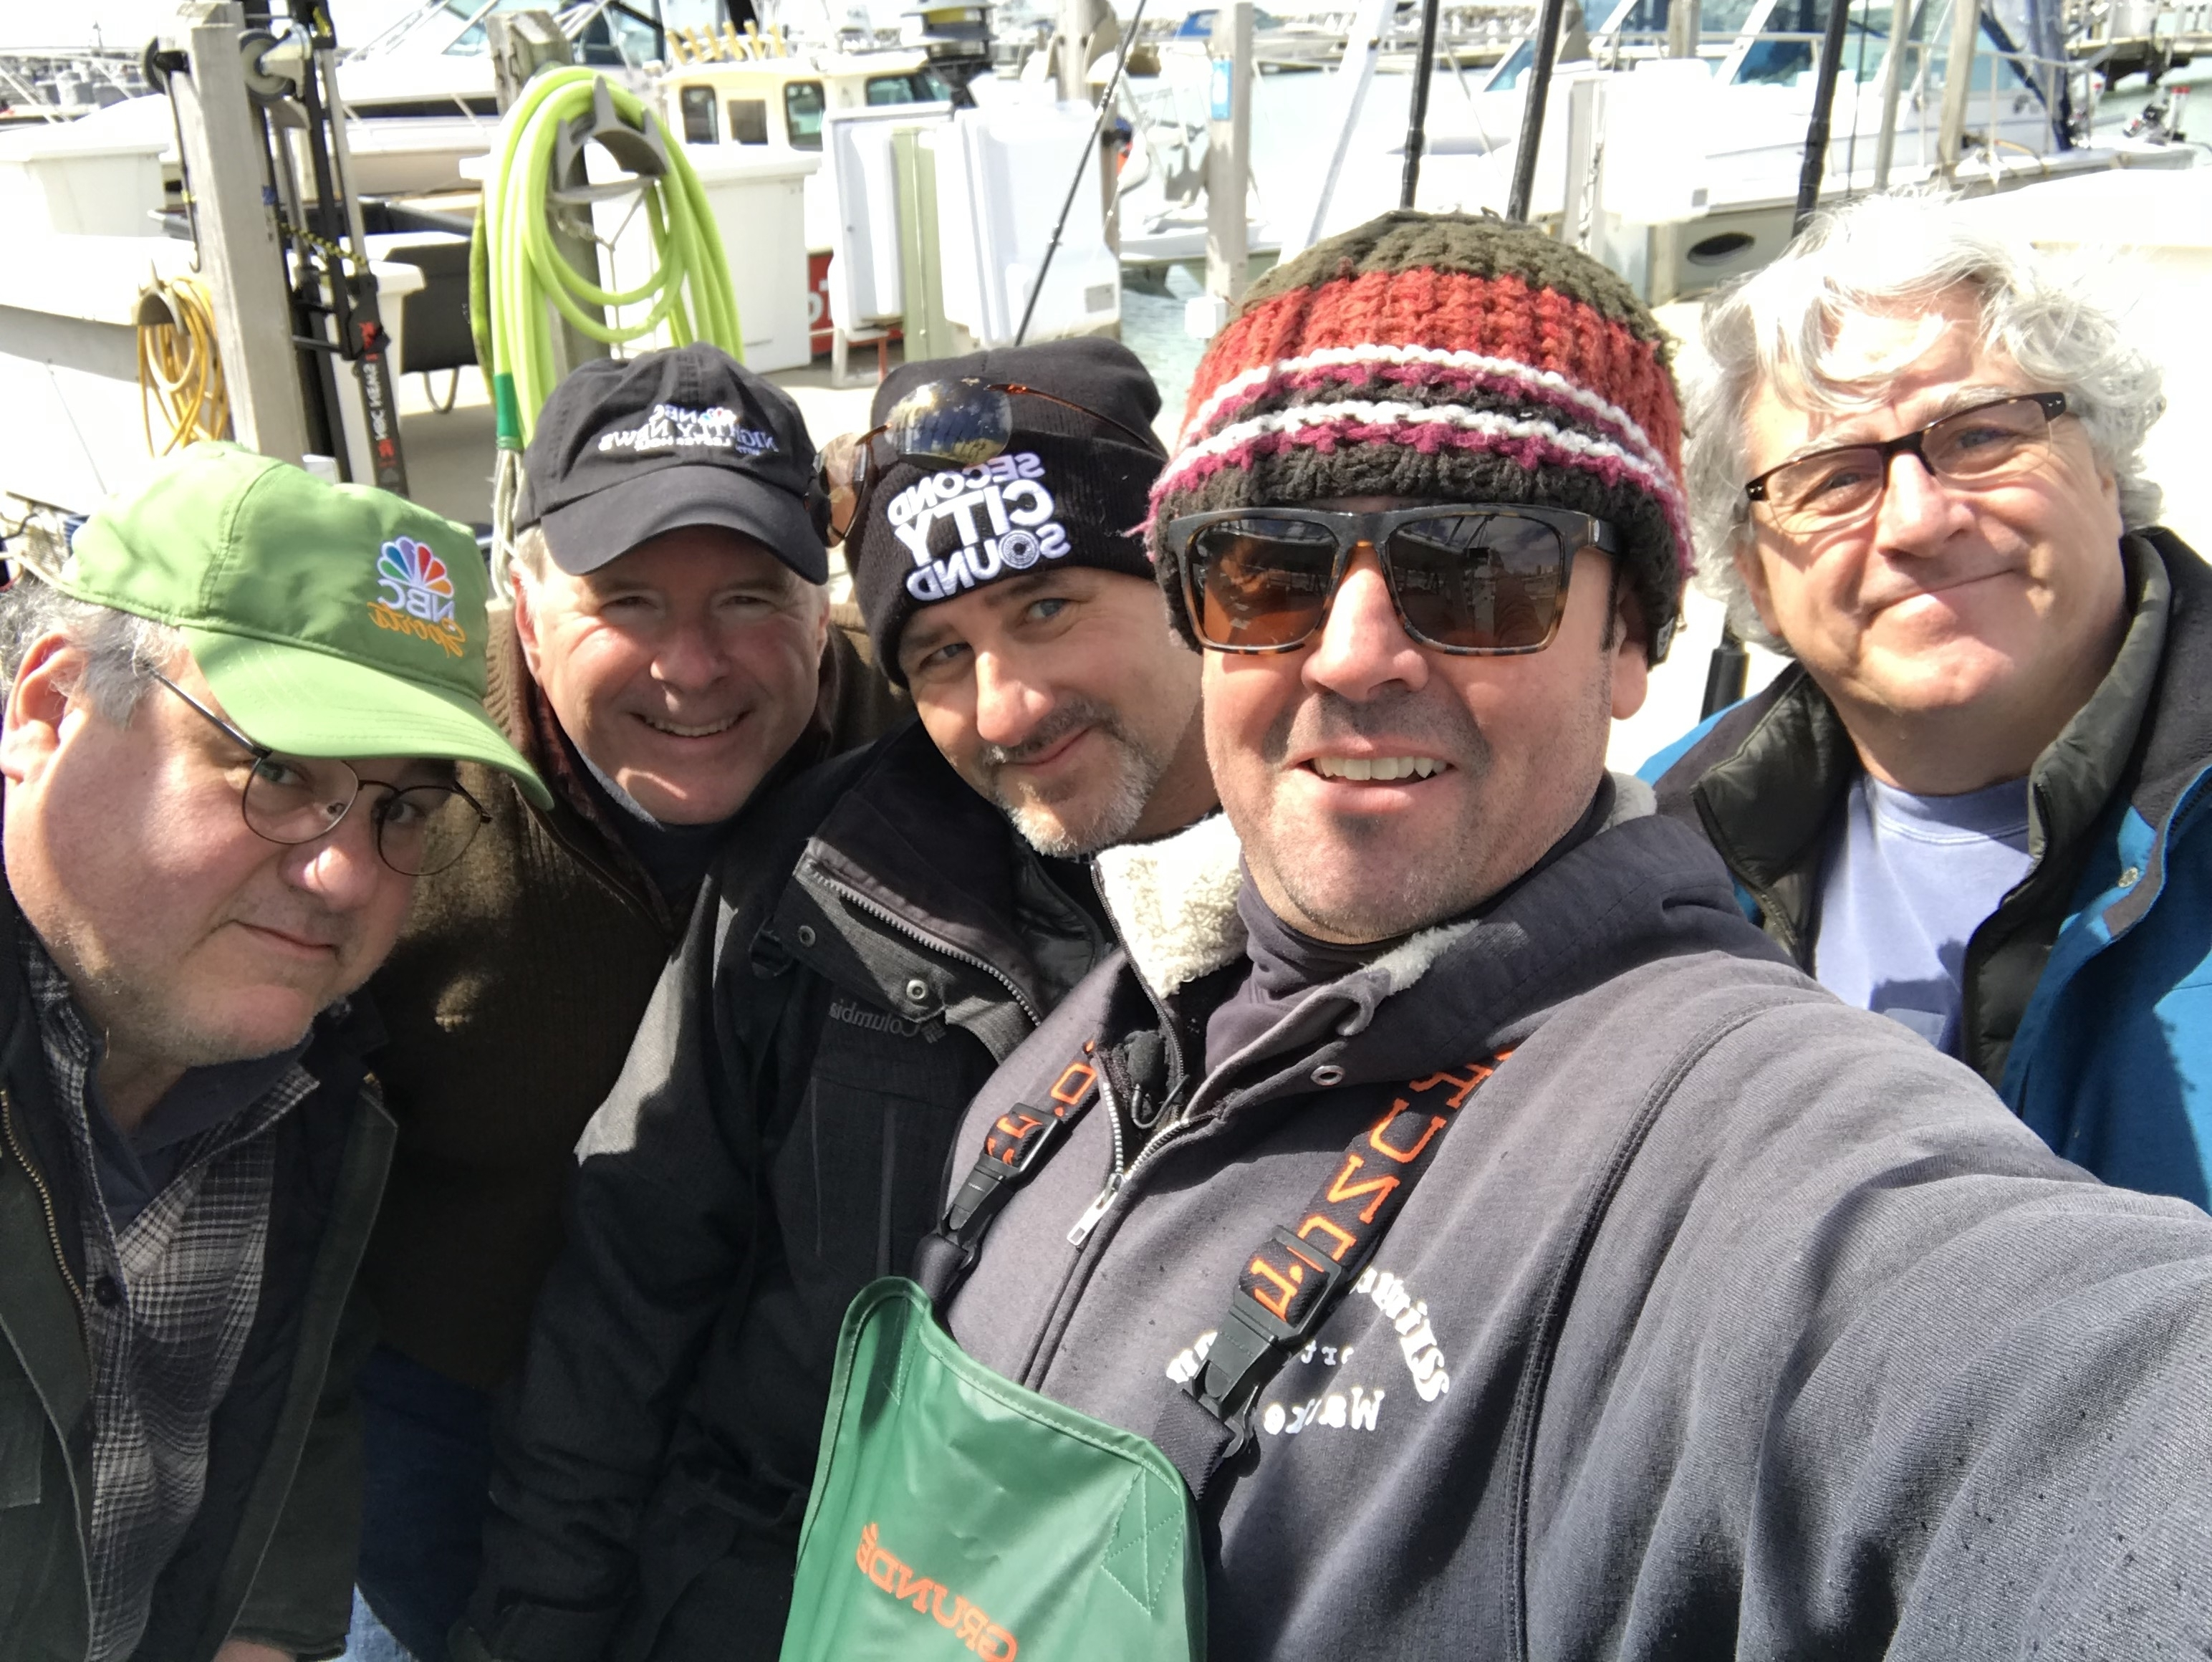 Capt Rick and NBC production crew